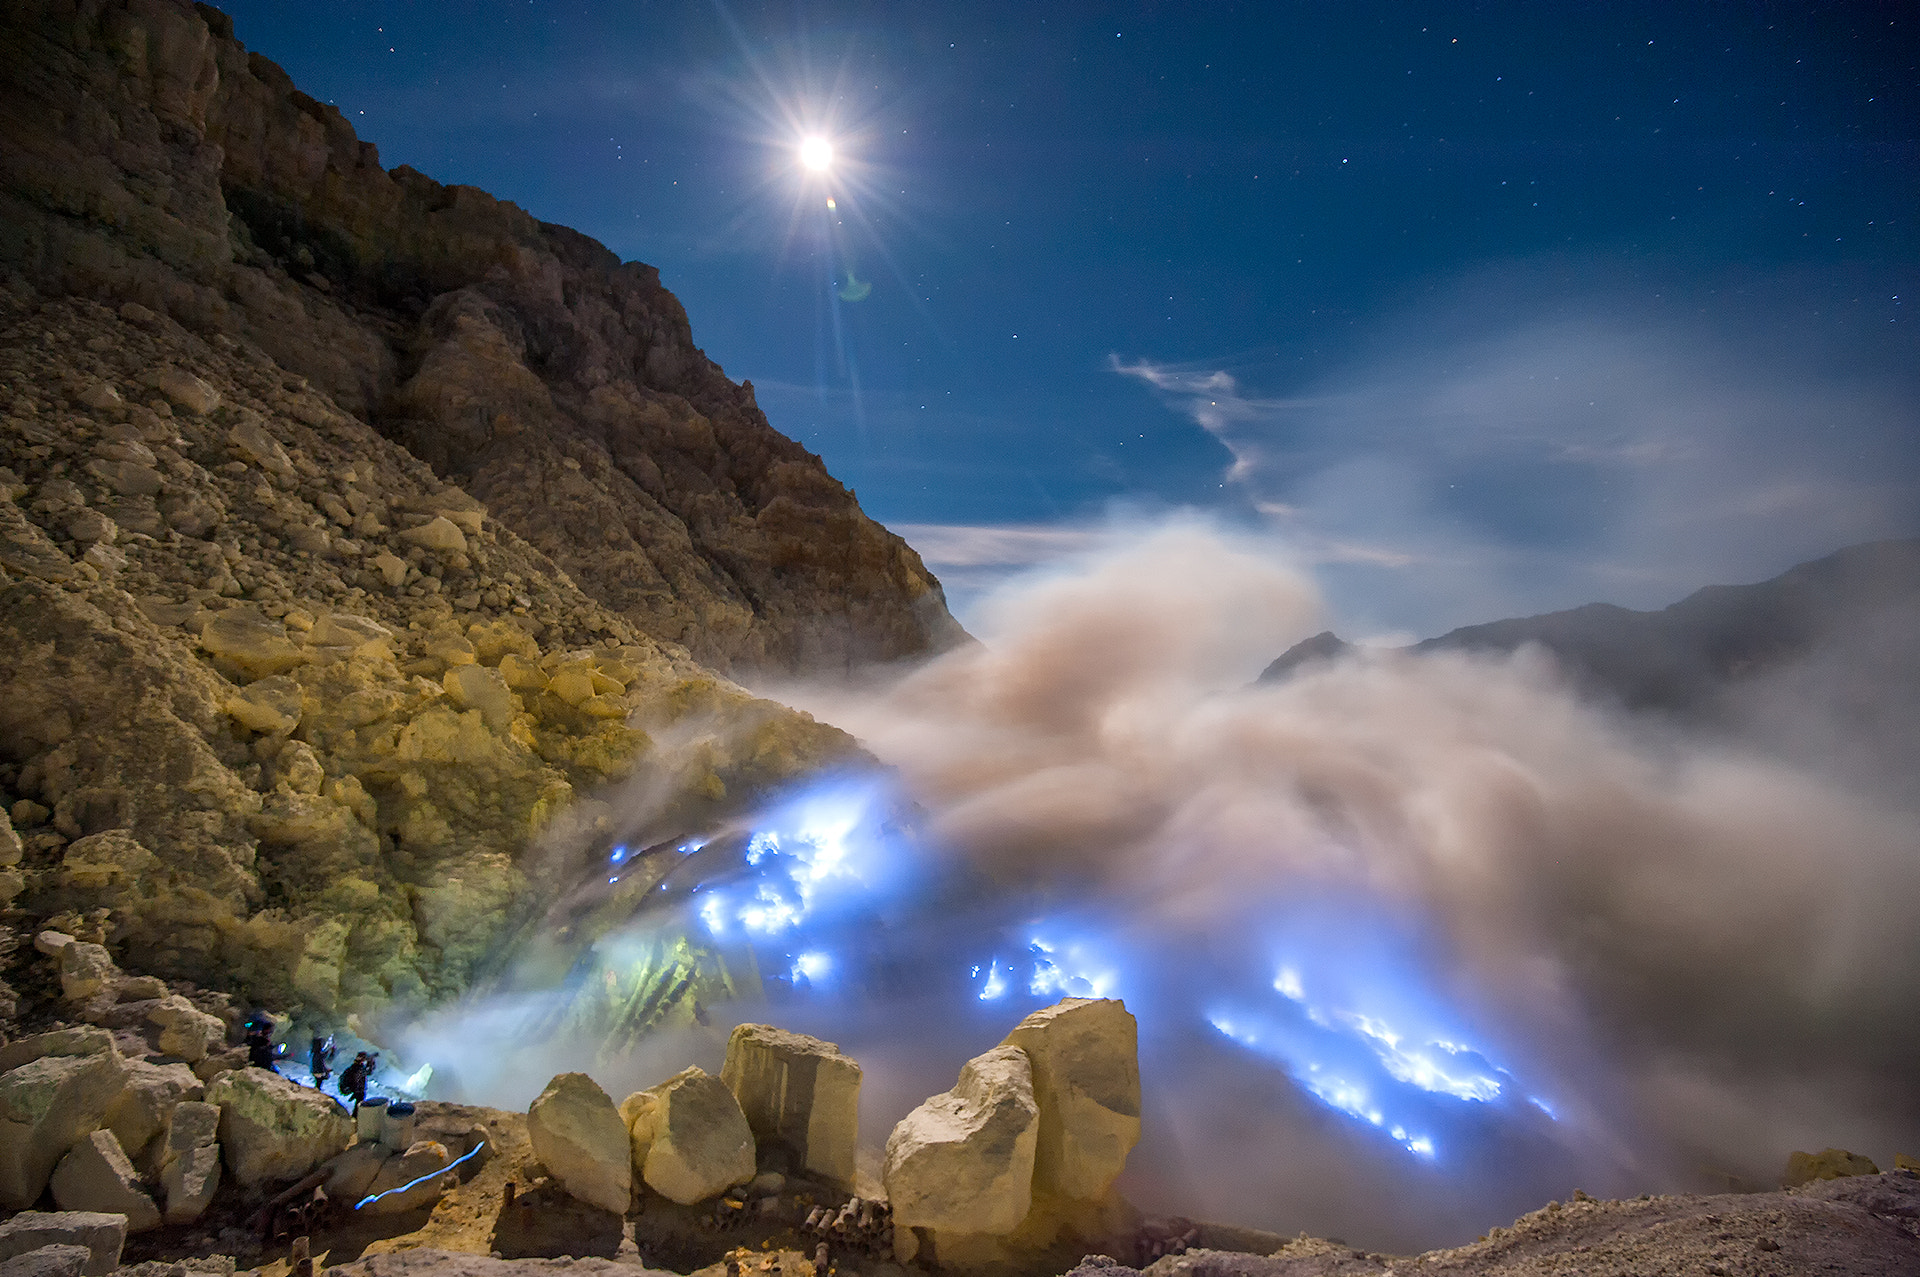 Photograph Blue sulfur flames by Puchong Pannoi on 500px